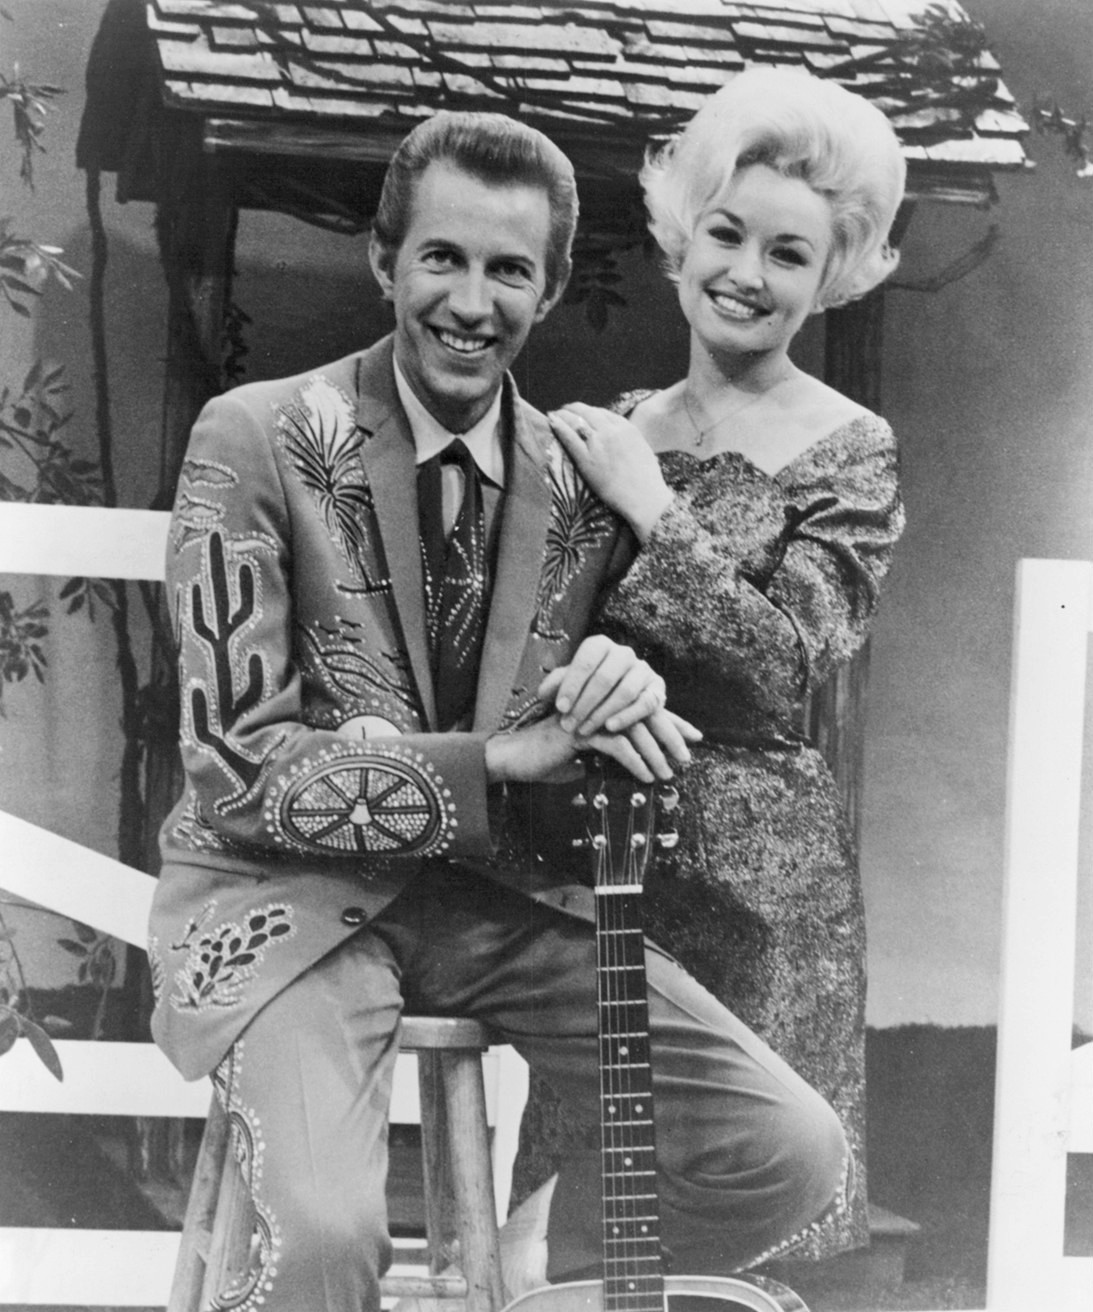 File:Porter Wagoner and Dolly Parton 1969.jpg